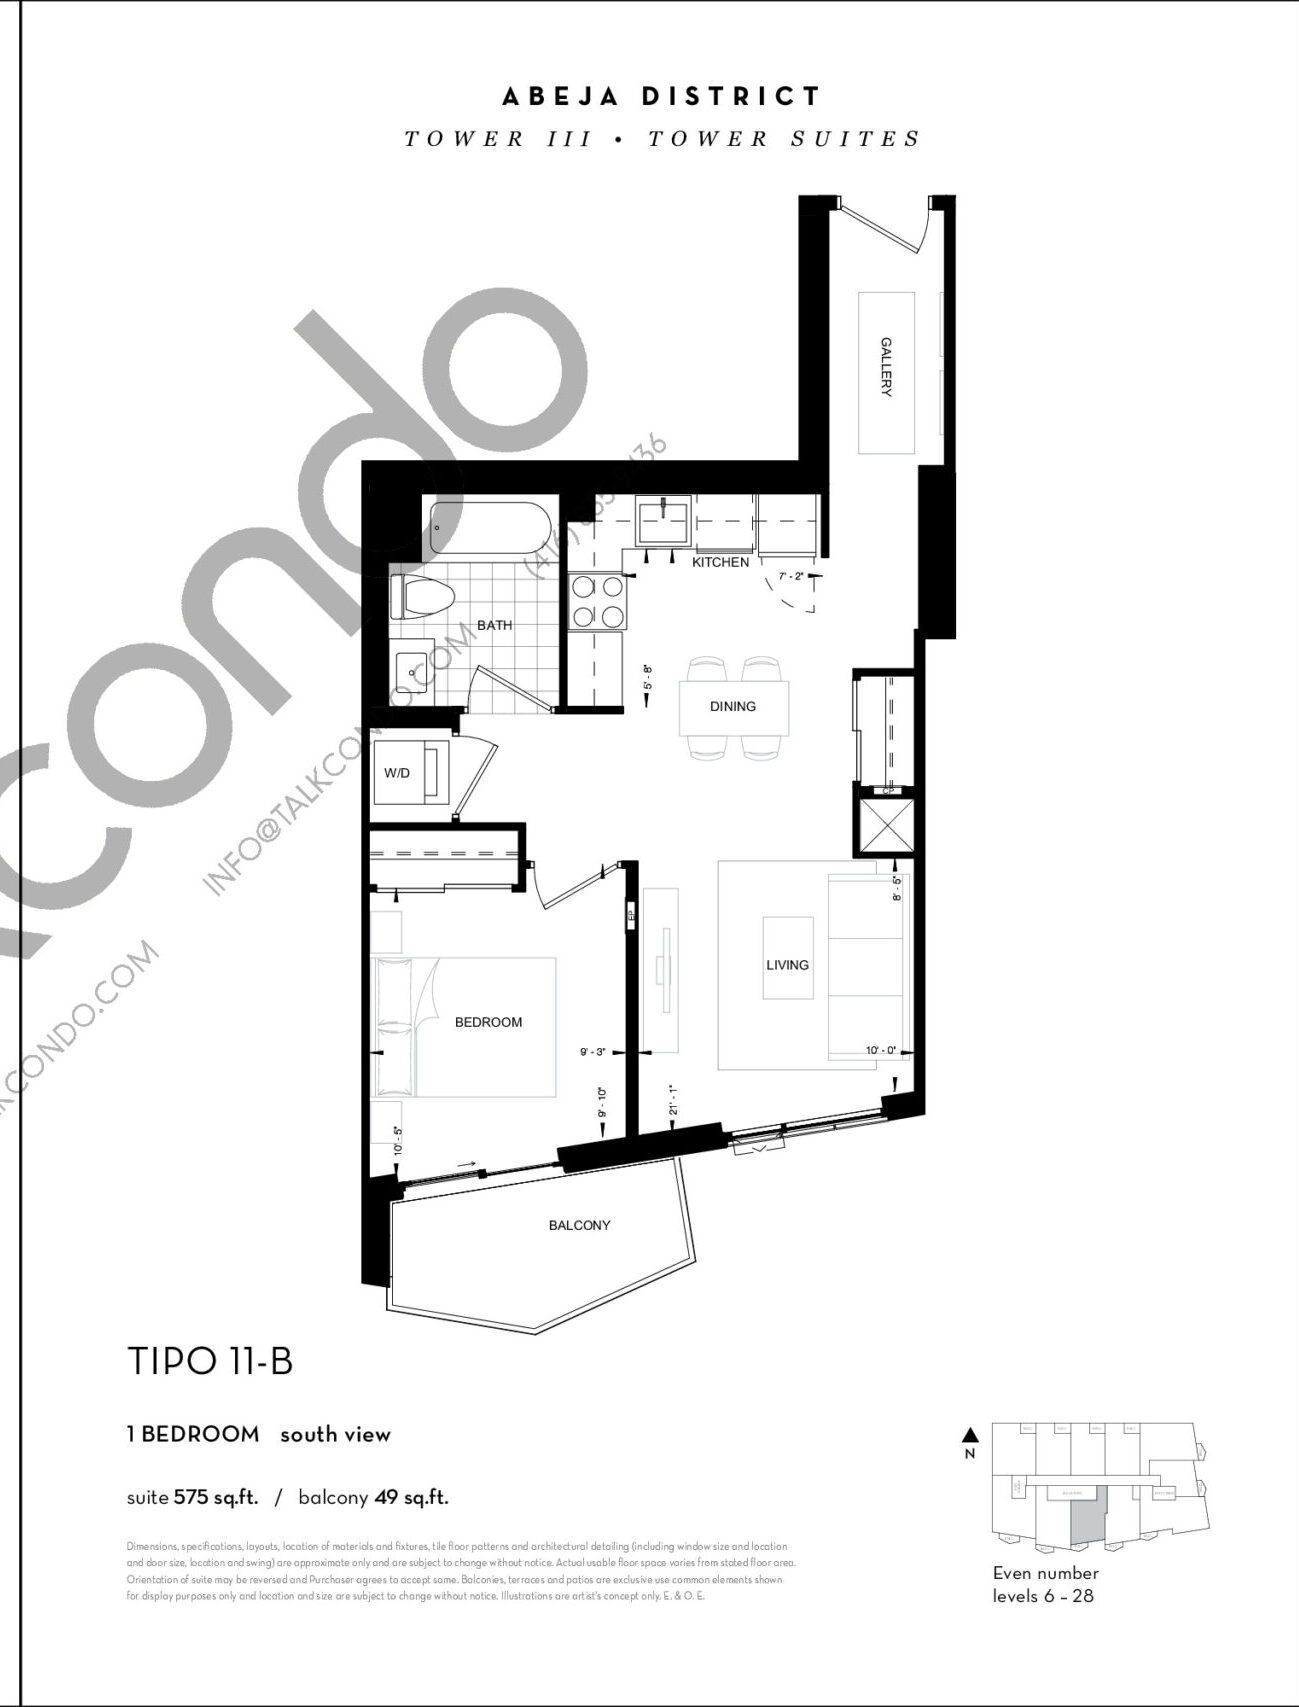 TIPO 11-B Floor Plan at Abeja District Condos Tower 3 - 575 sq.ft